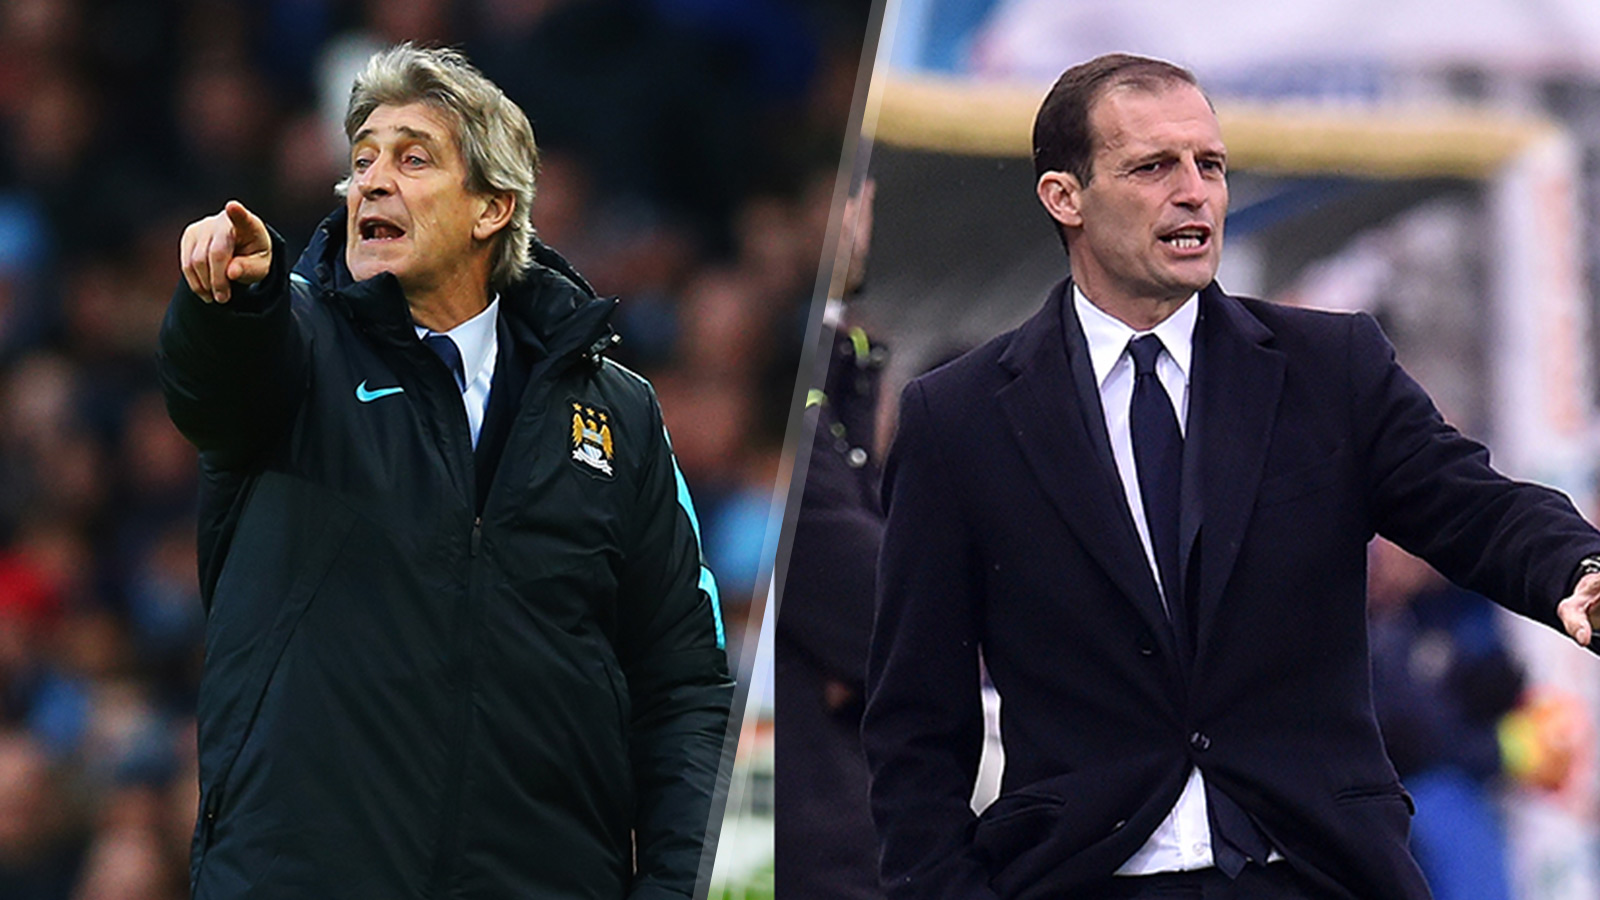 Juventus to move for Pellegrini if Allegri chooses Chelsea